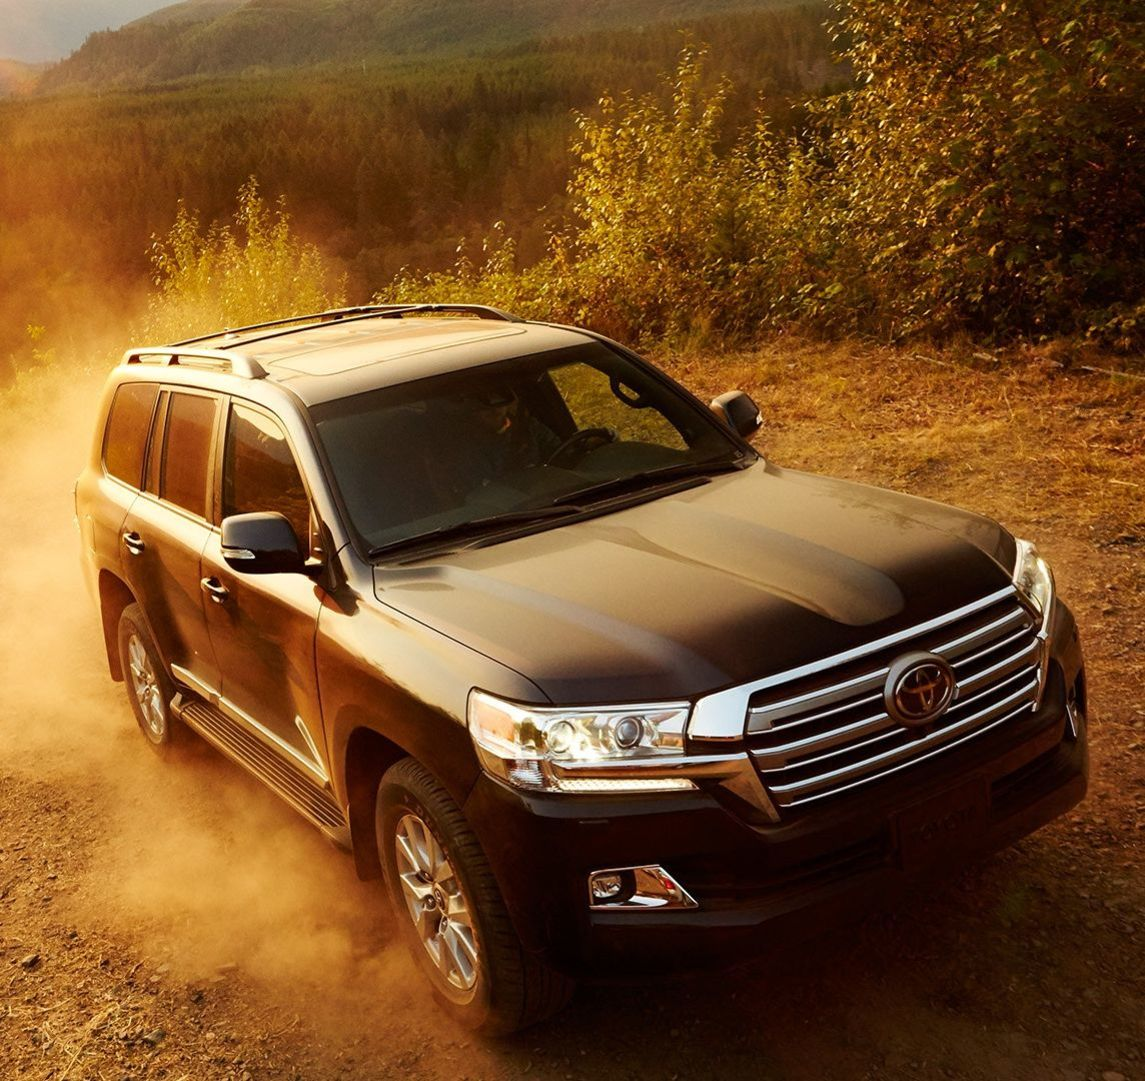 2019 Toyota Land Cruiser for Sale near Oxford, PA